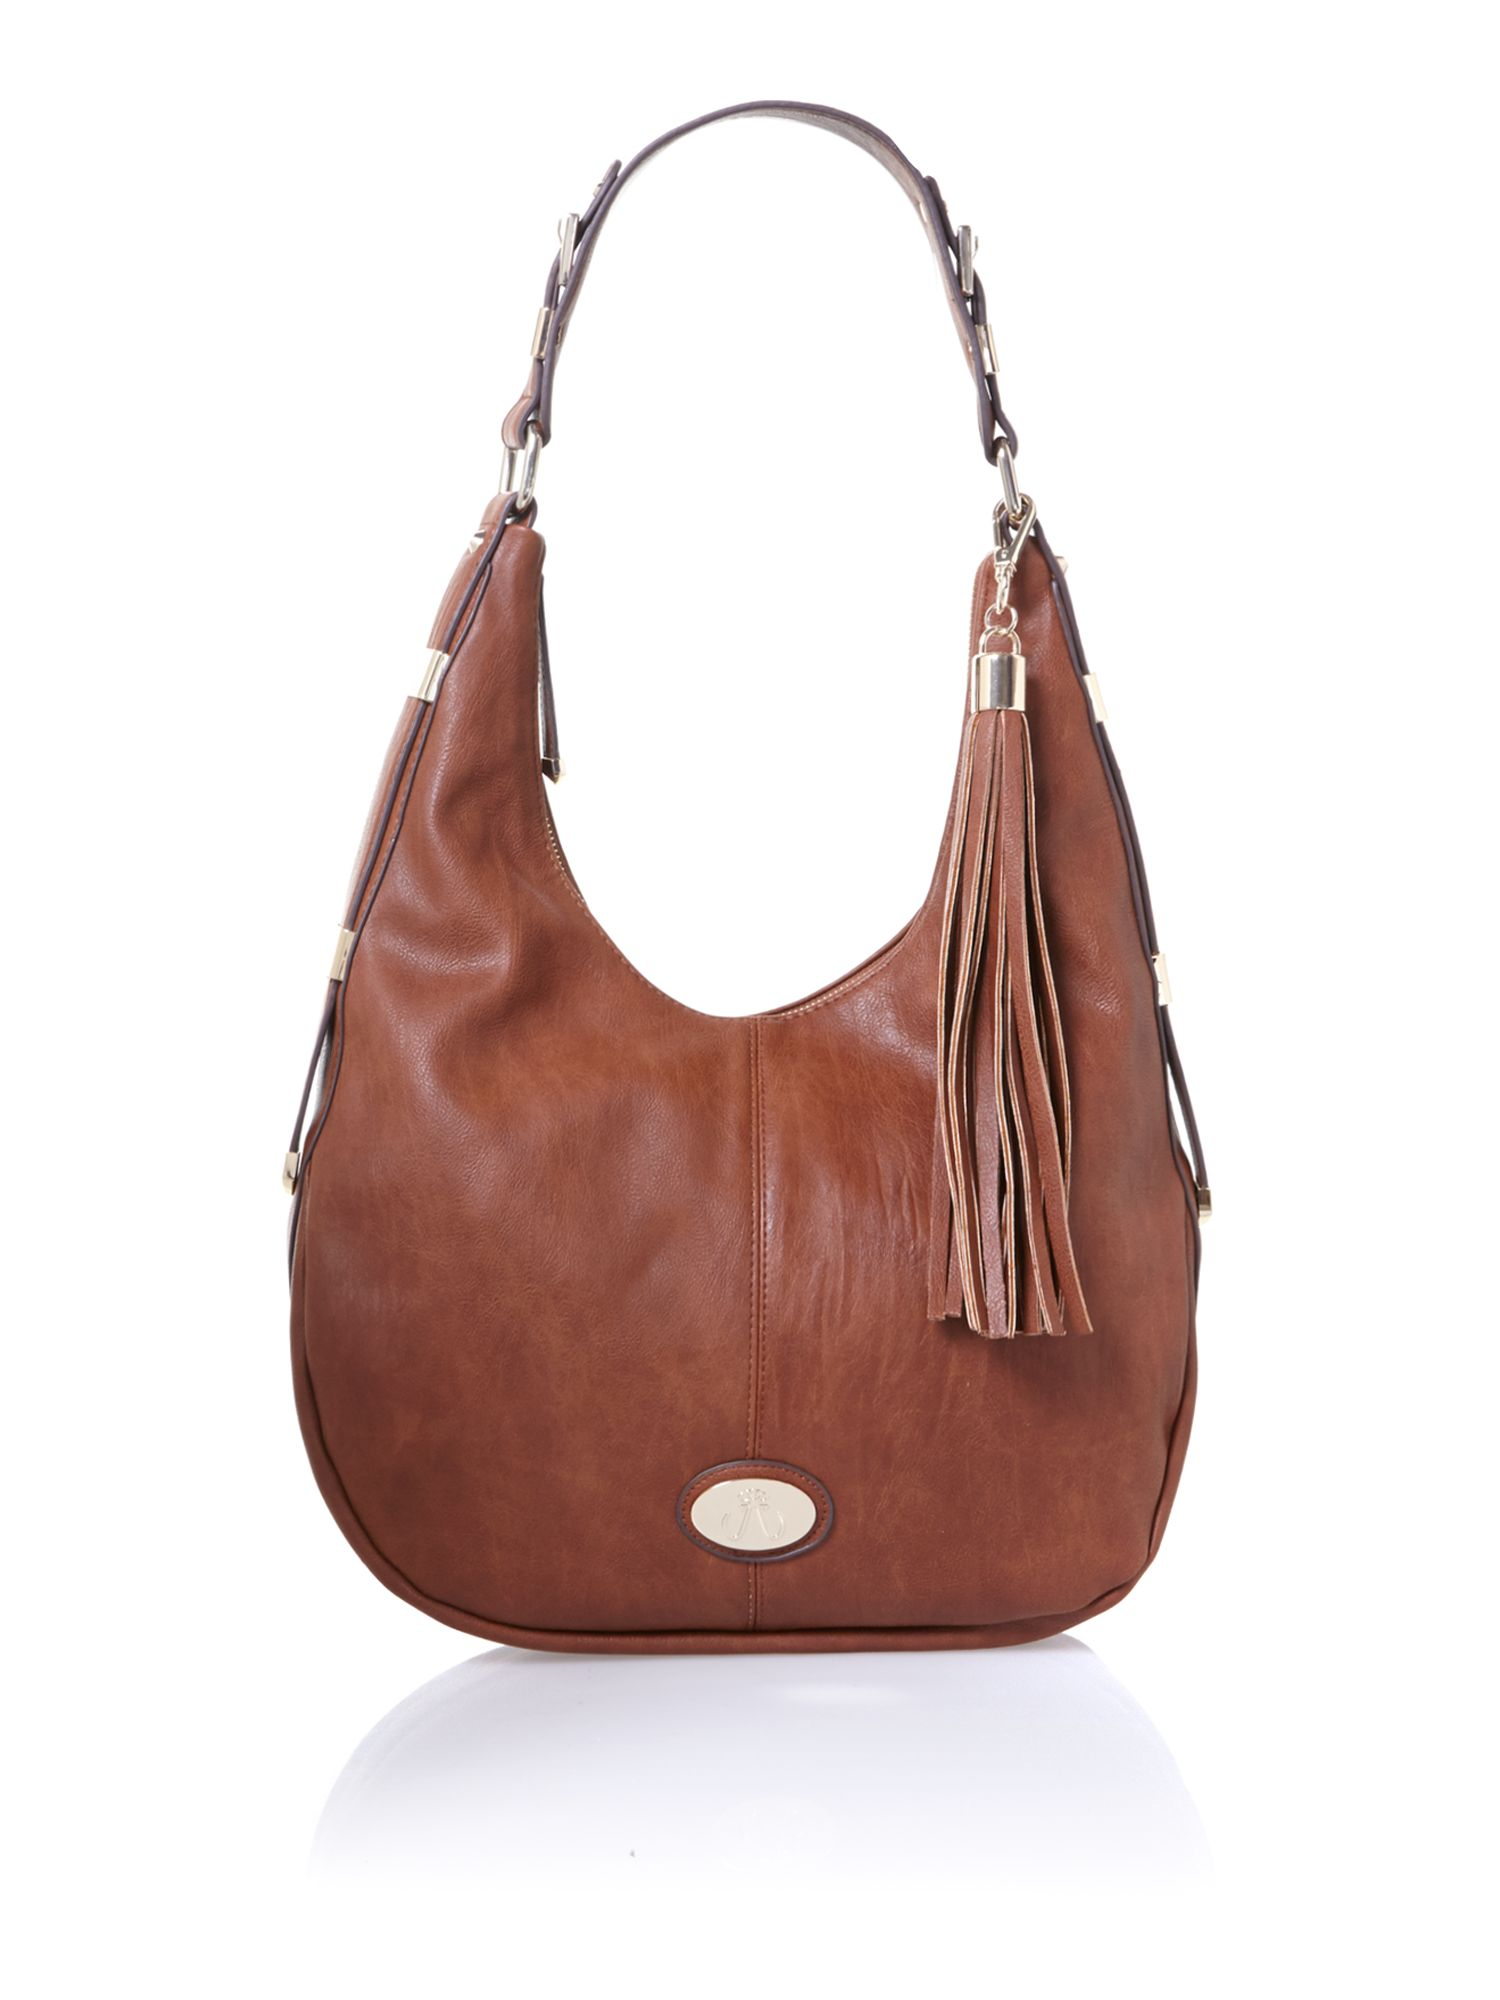 Tan scoop shoulder bag